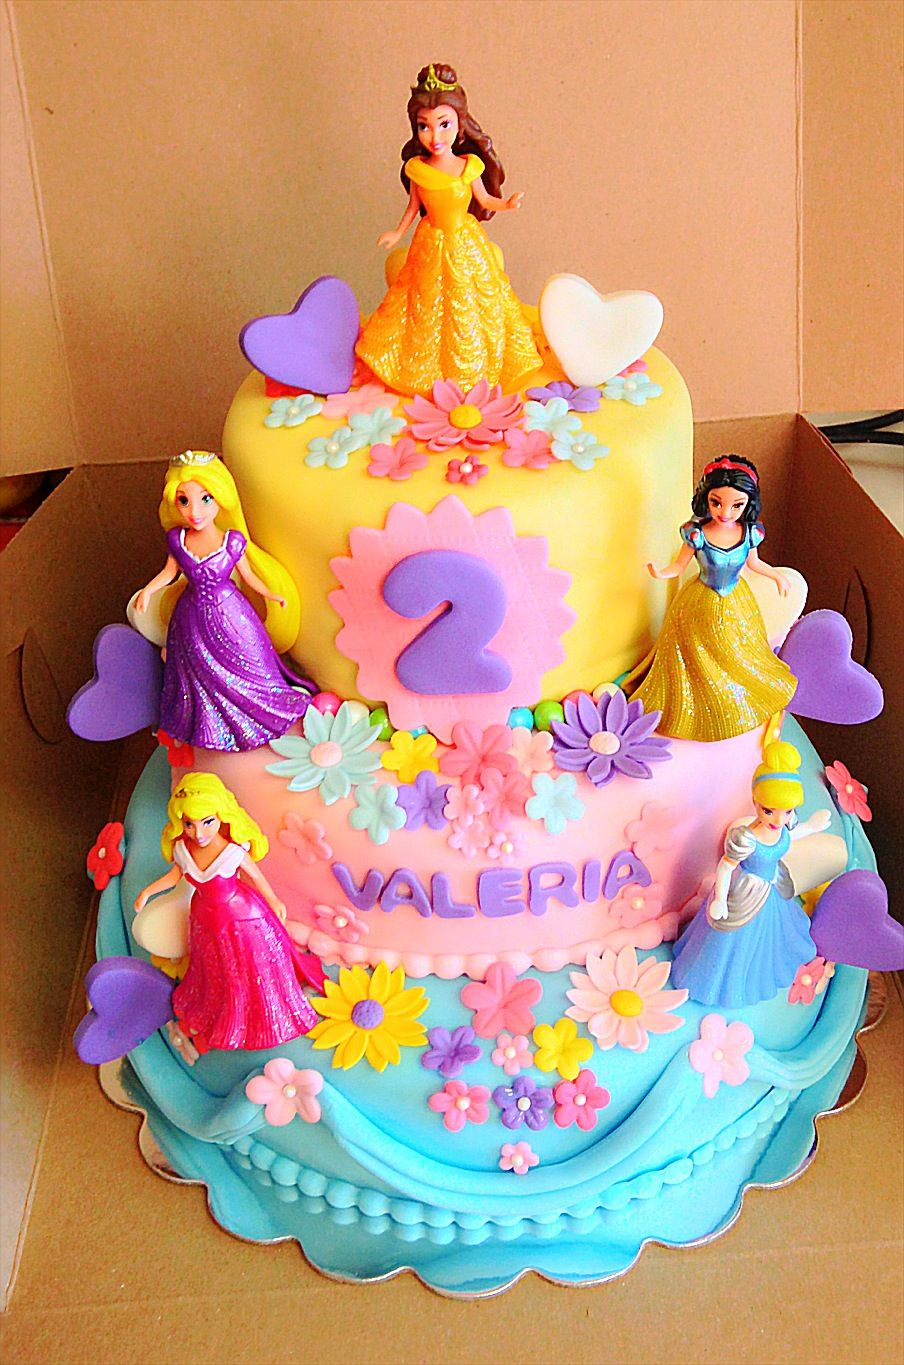 Valerias disney princess cake Icing Sugar Dust Pinterest